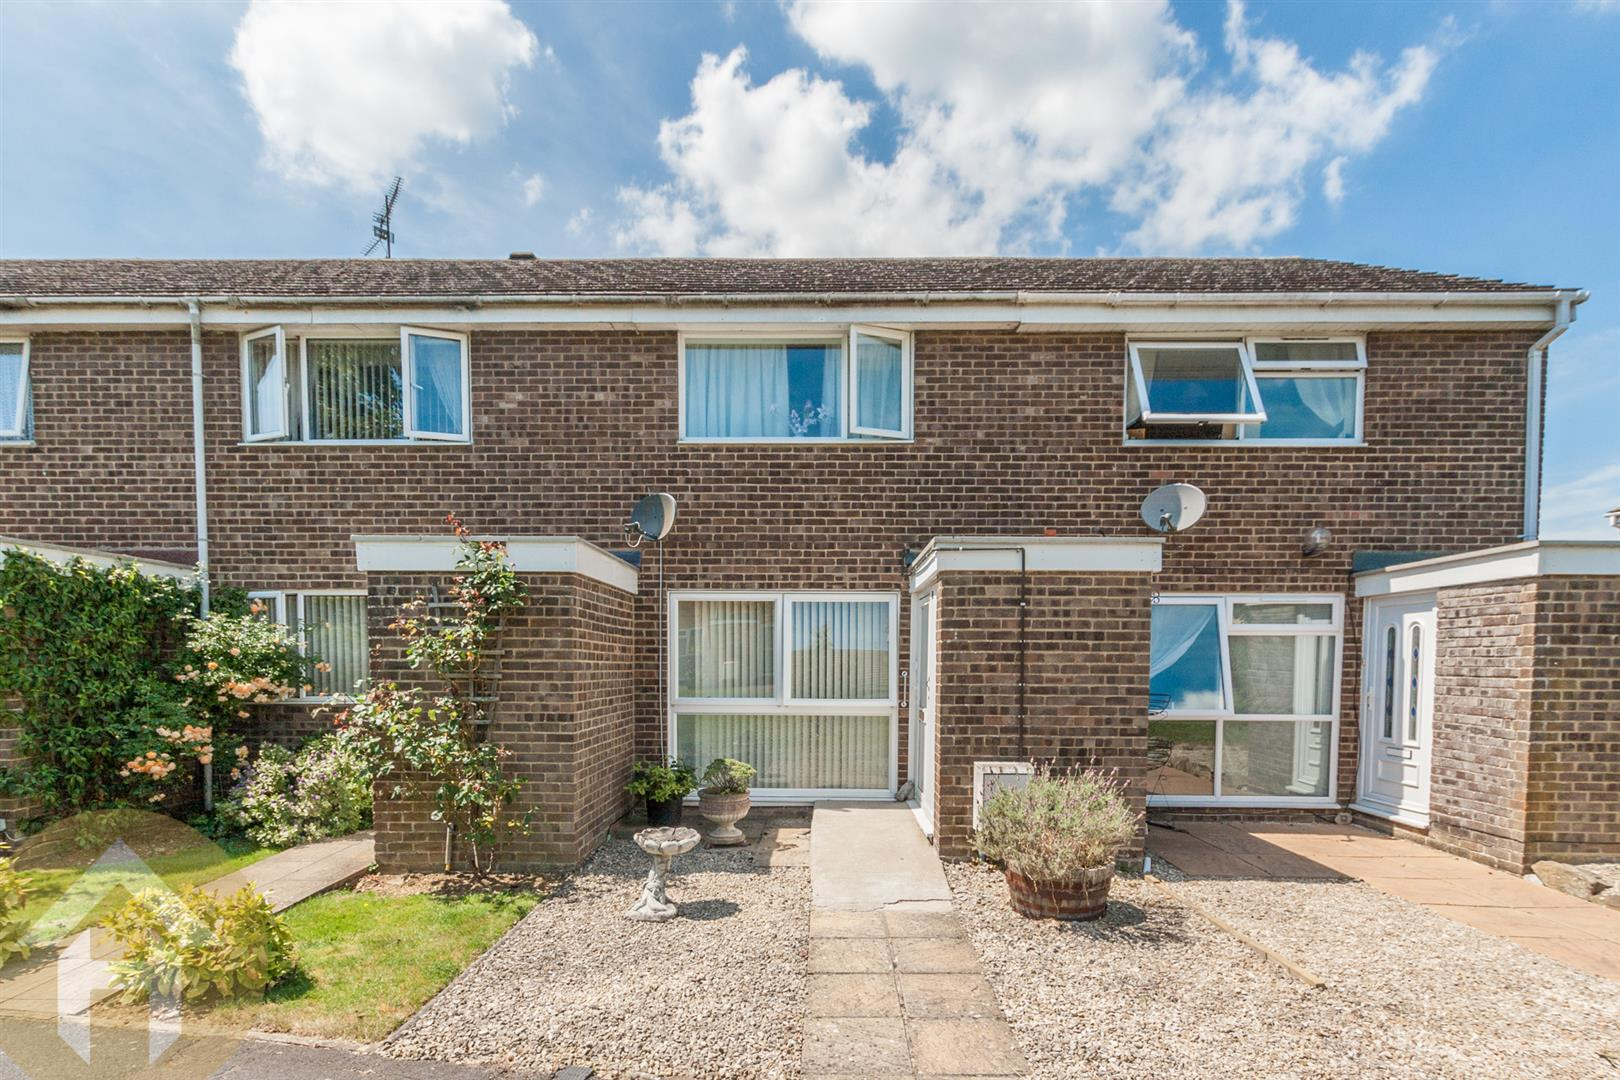 2 Bedrooms Terraced House for sale in Briars Close, Royal Wootton Bassett, Swindon